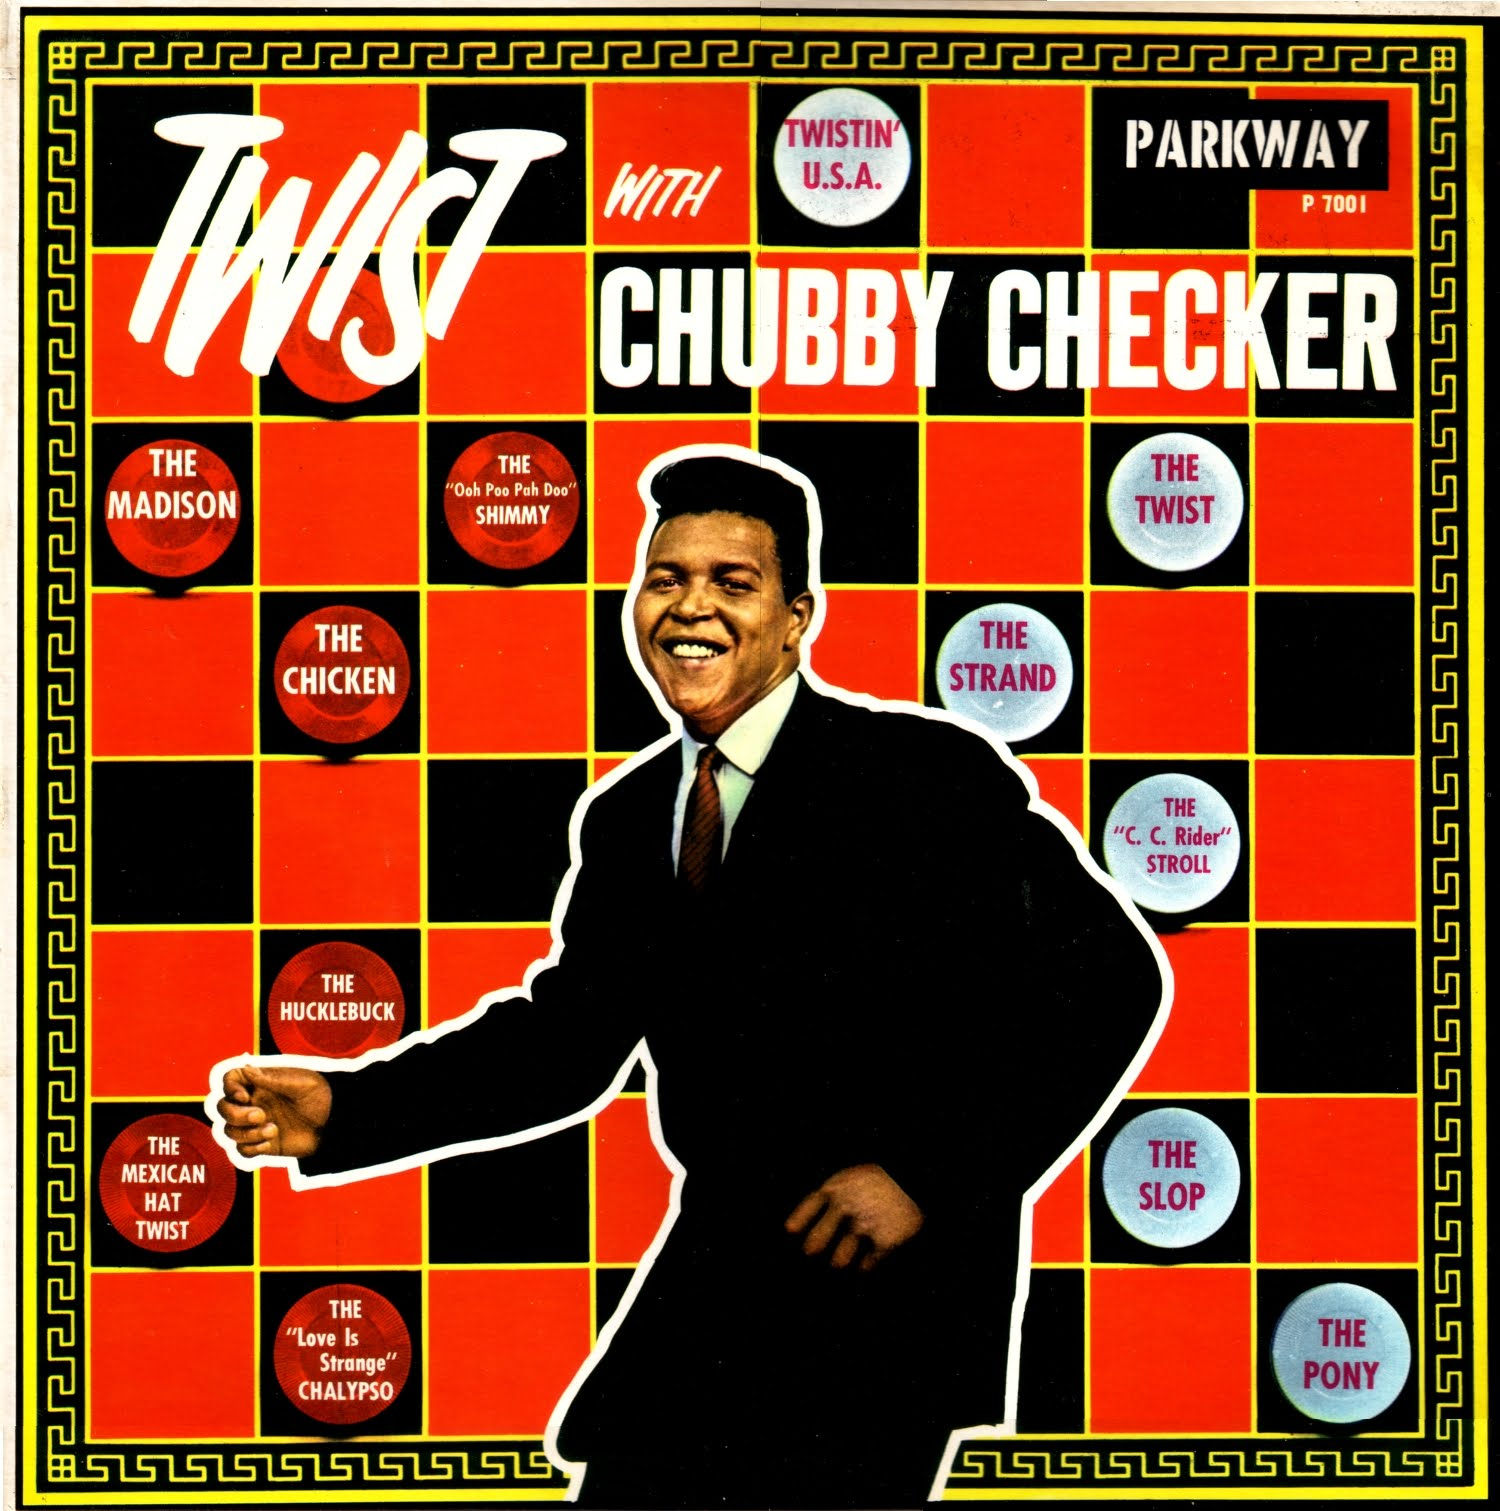 When did chubby checker die